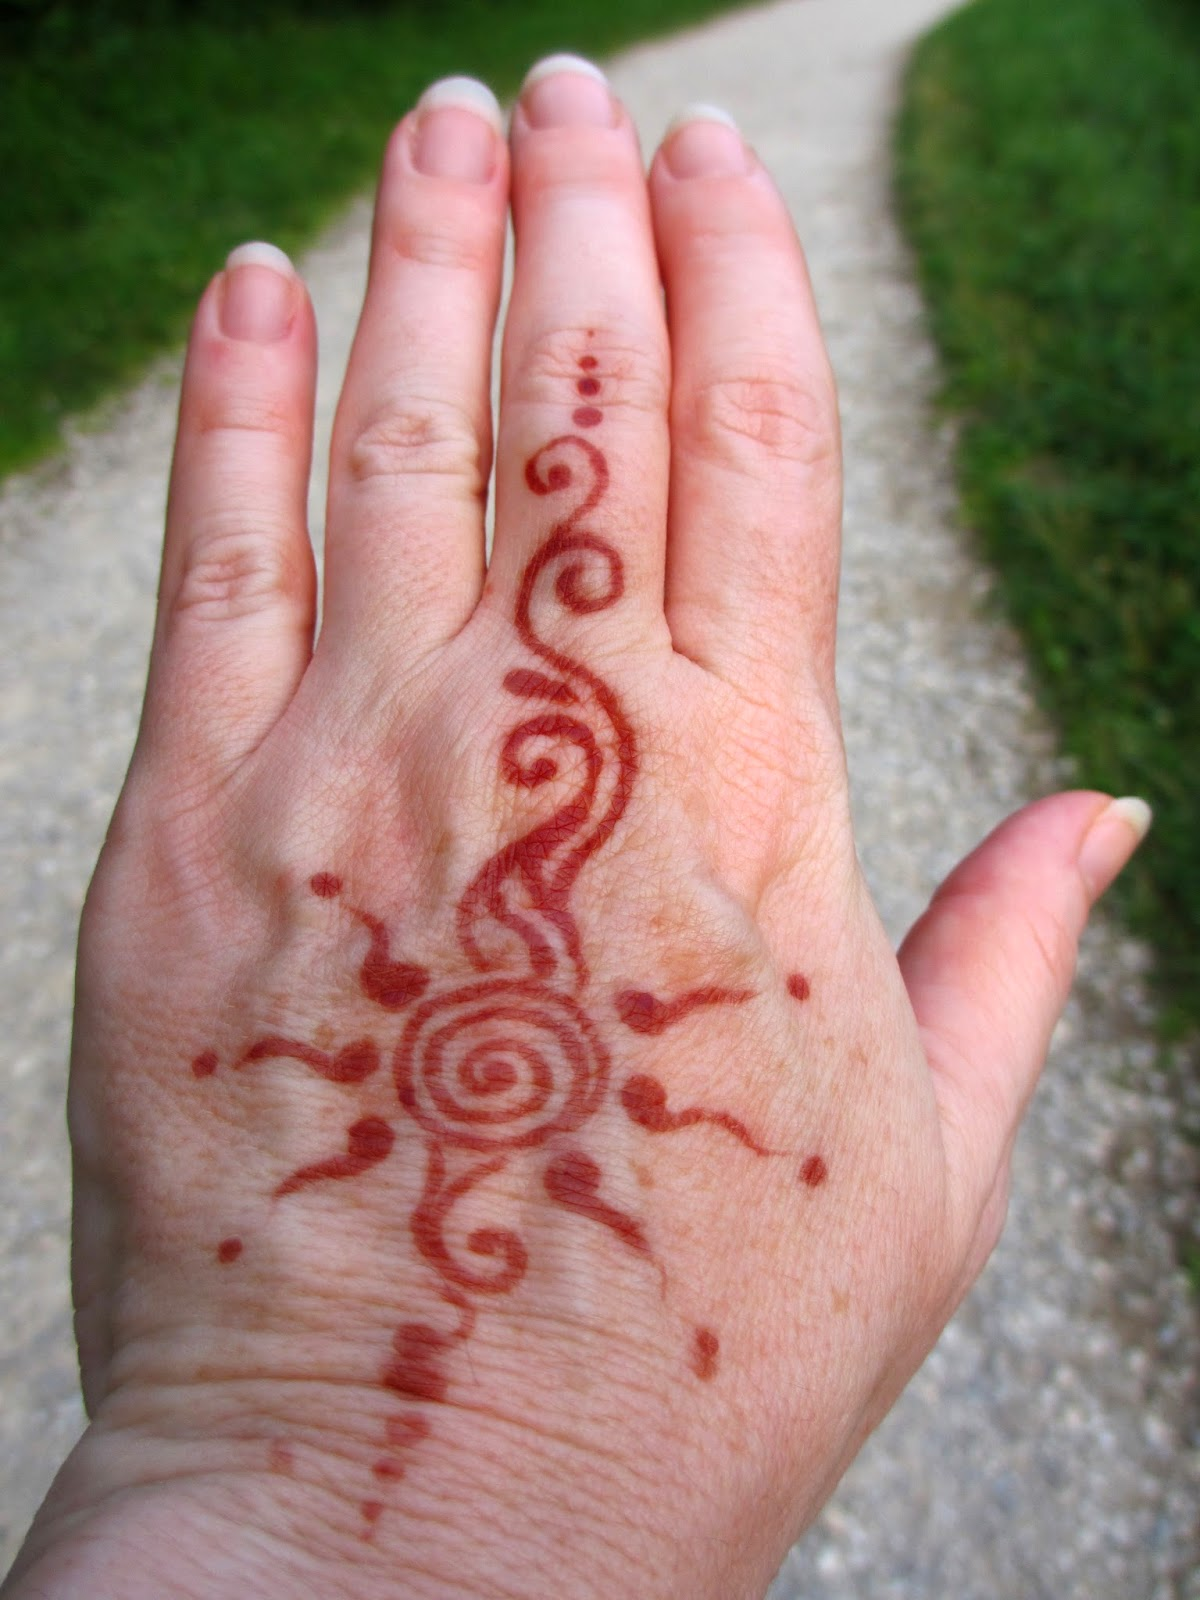 Simple Sun Henna Tattoo Designs: The Daily Apple: Apple #680: Henna Tattoos